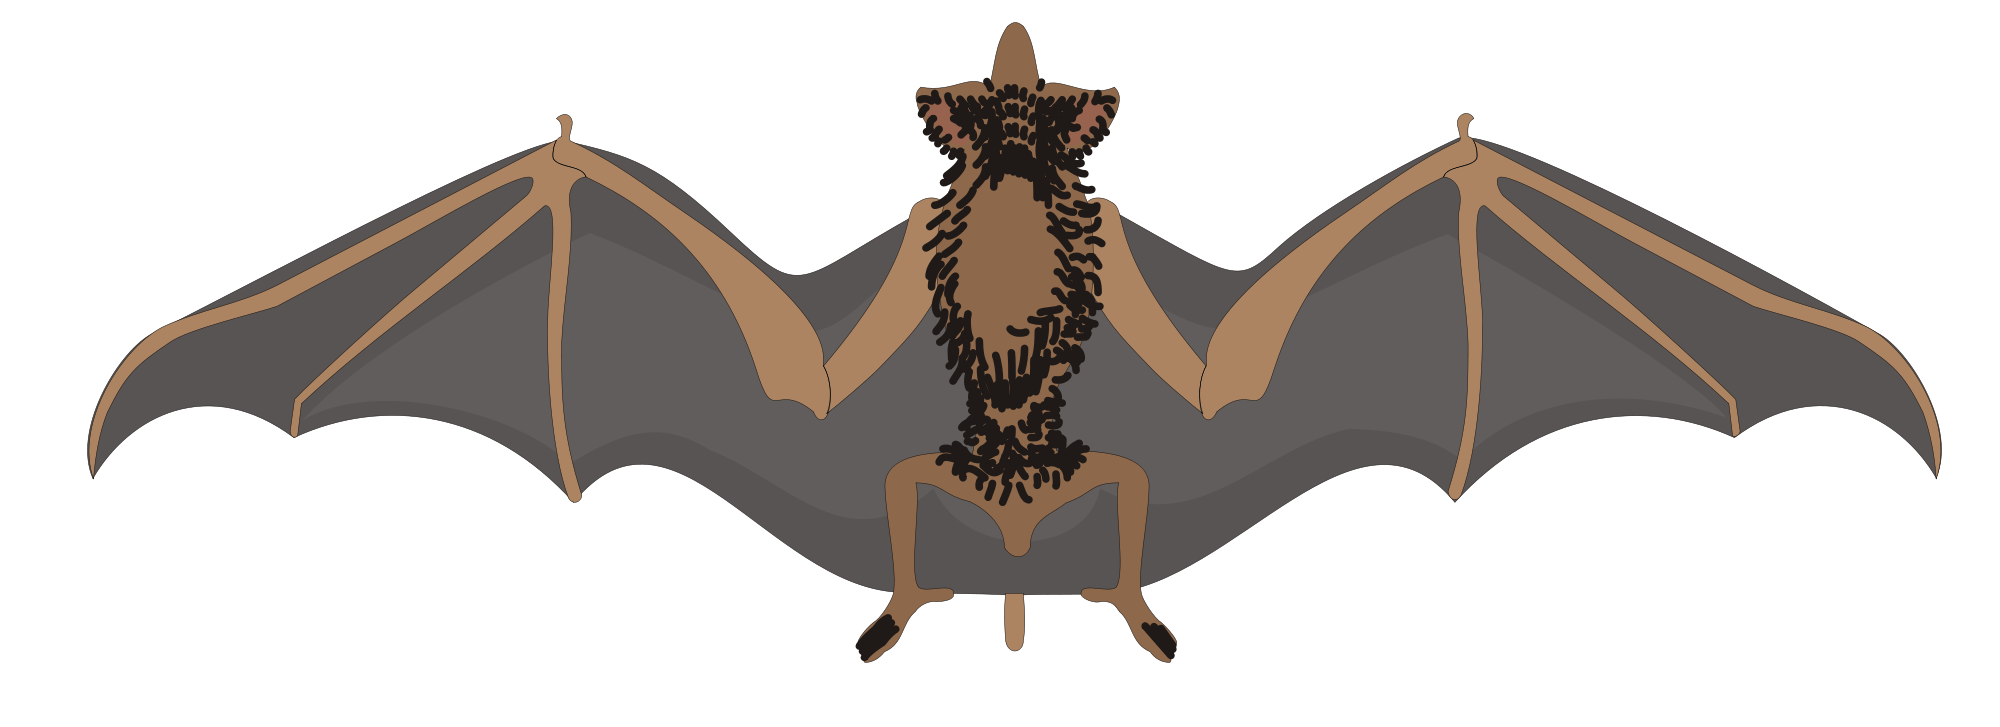 Clipart halloween bat download File:Bat clipart.svg - Wikimedia Commons download